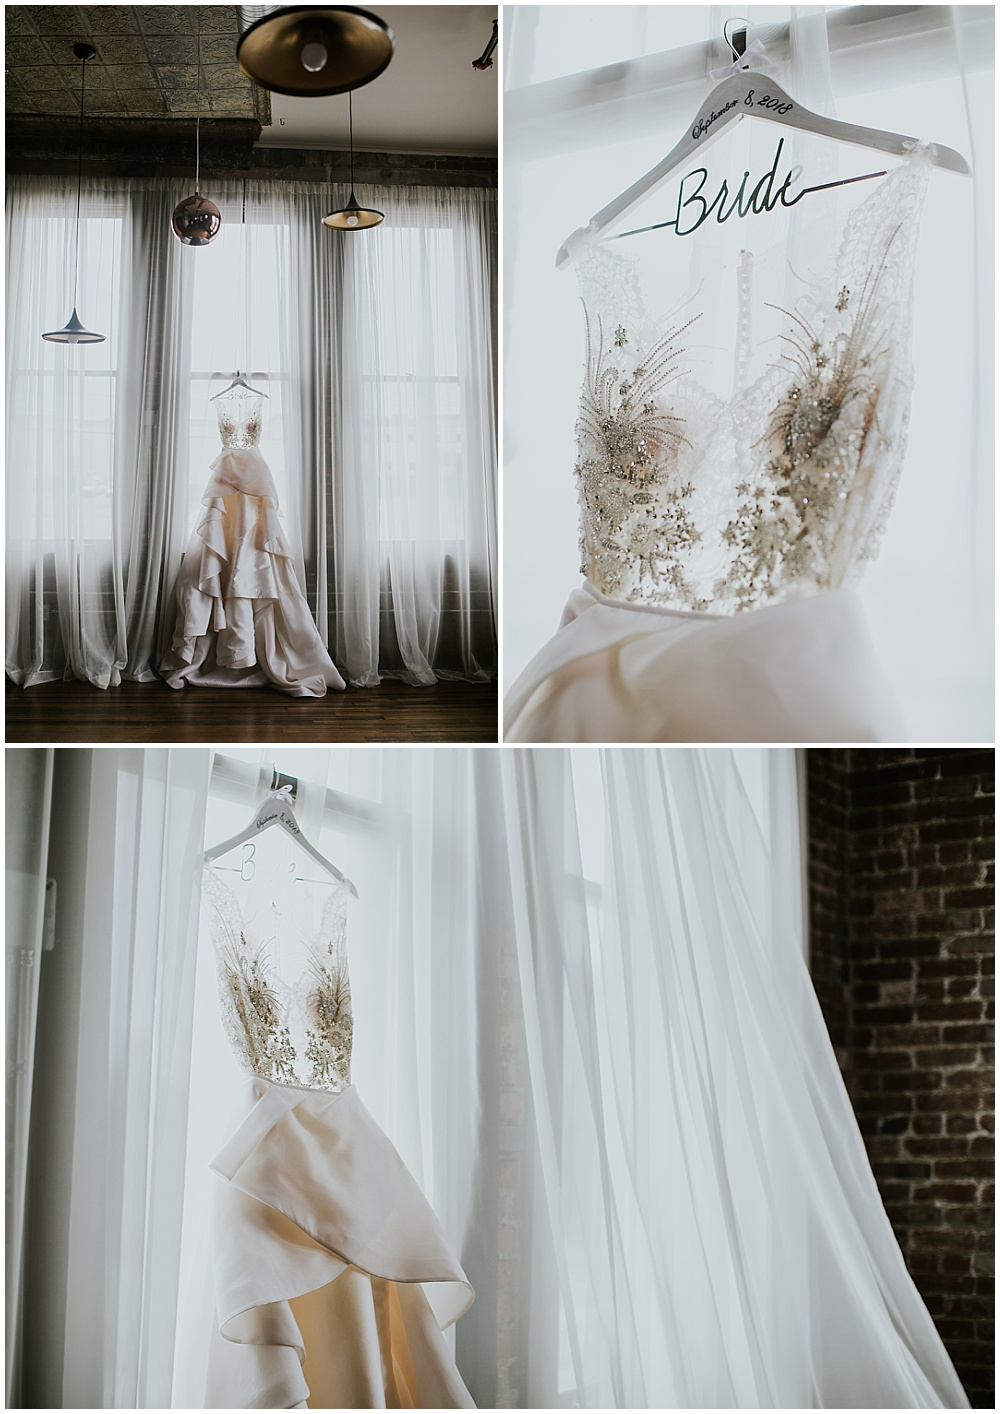 Sheer top and beaded wedding dress hanging in a window with a wooden bride hanger | Korean-American intimate multicultural wedding in Neidhammer coffee shop